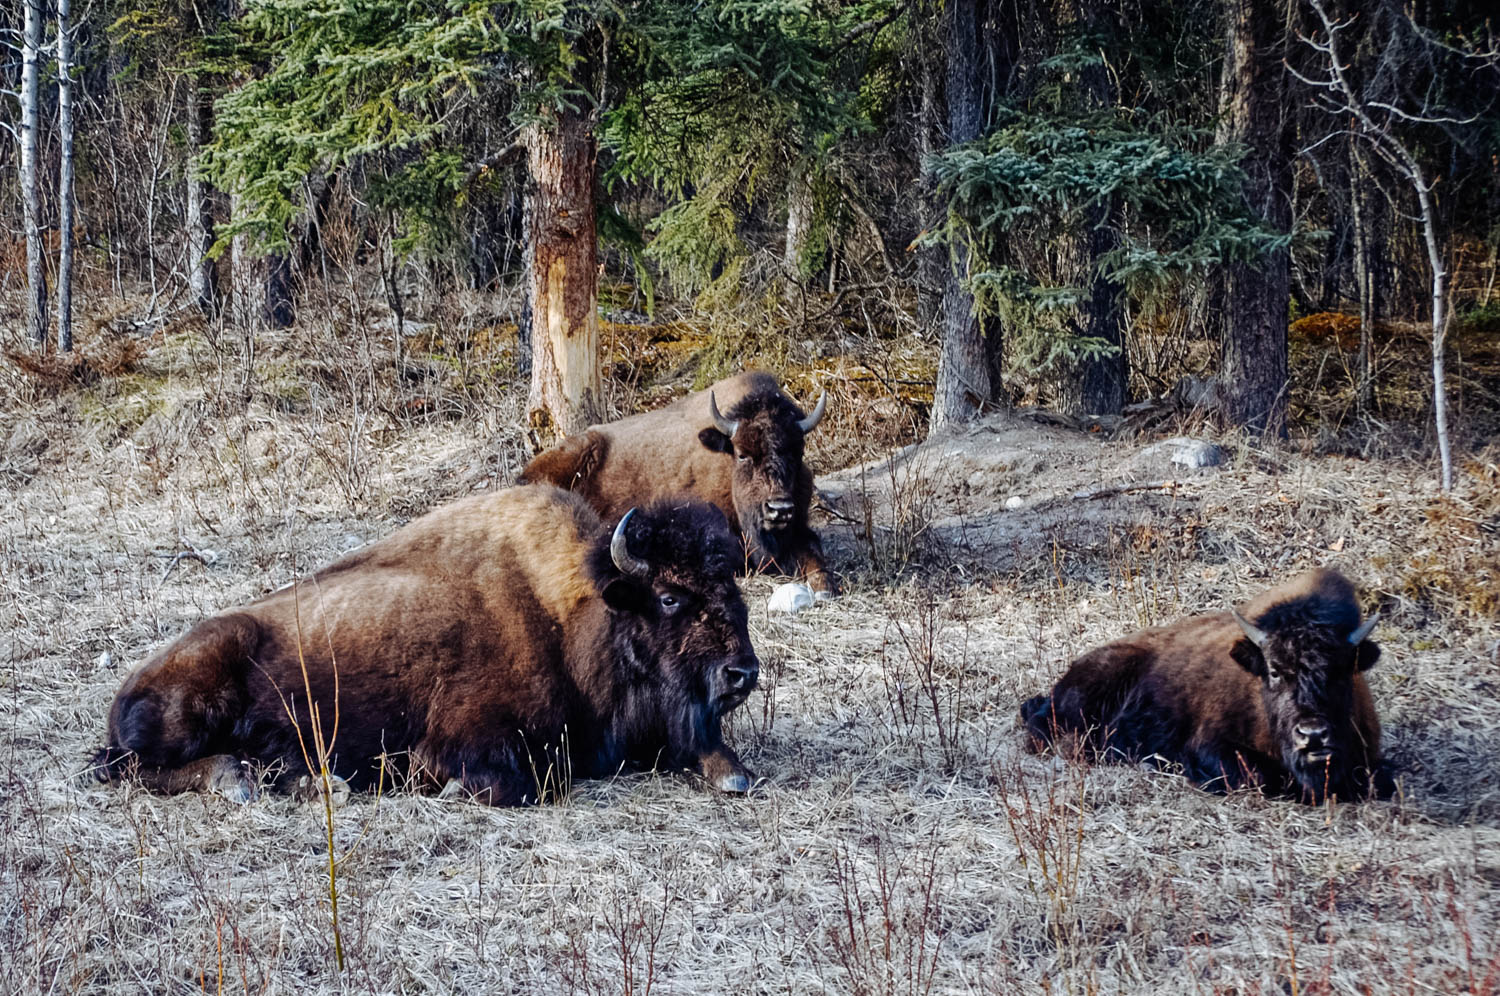 The Liard Bison herd. There were lots of brand new calves too!